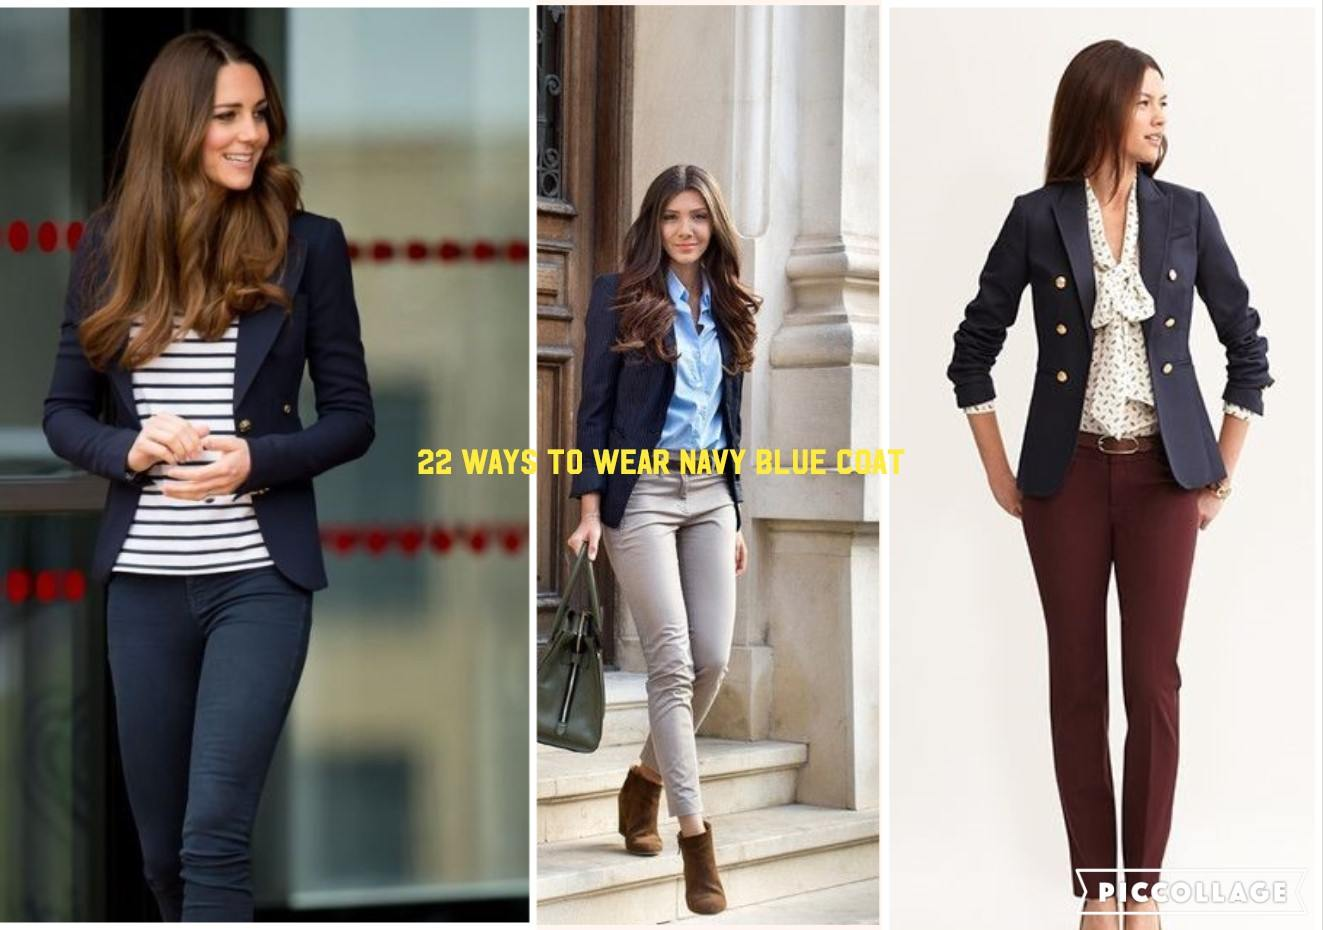 77595edbcbc00 Outfits with Navy Blue Coat -22 Ideas to Wear Navy Blue Coats